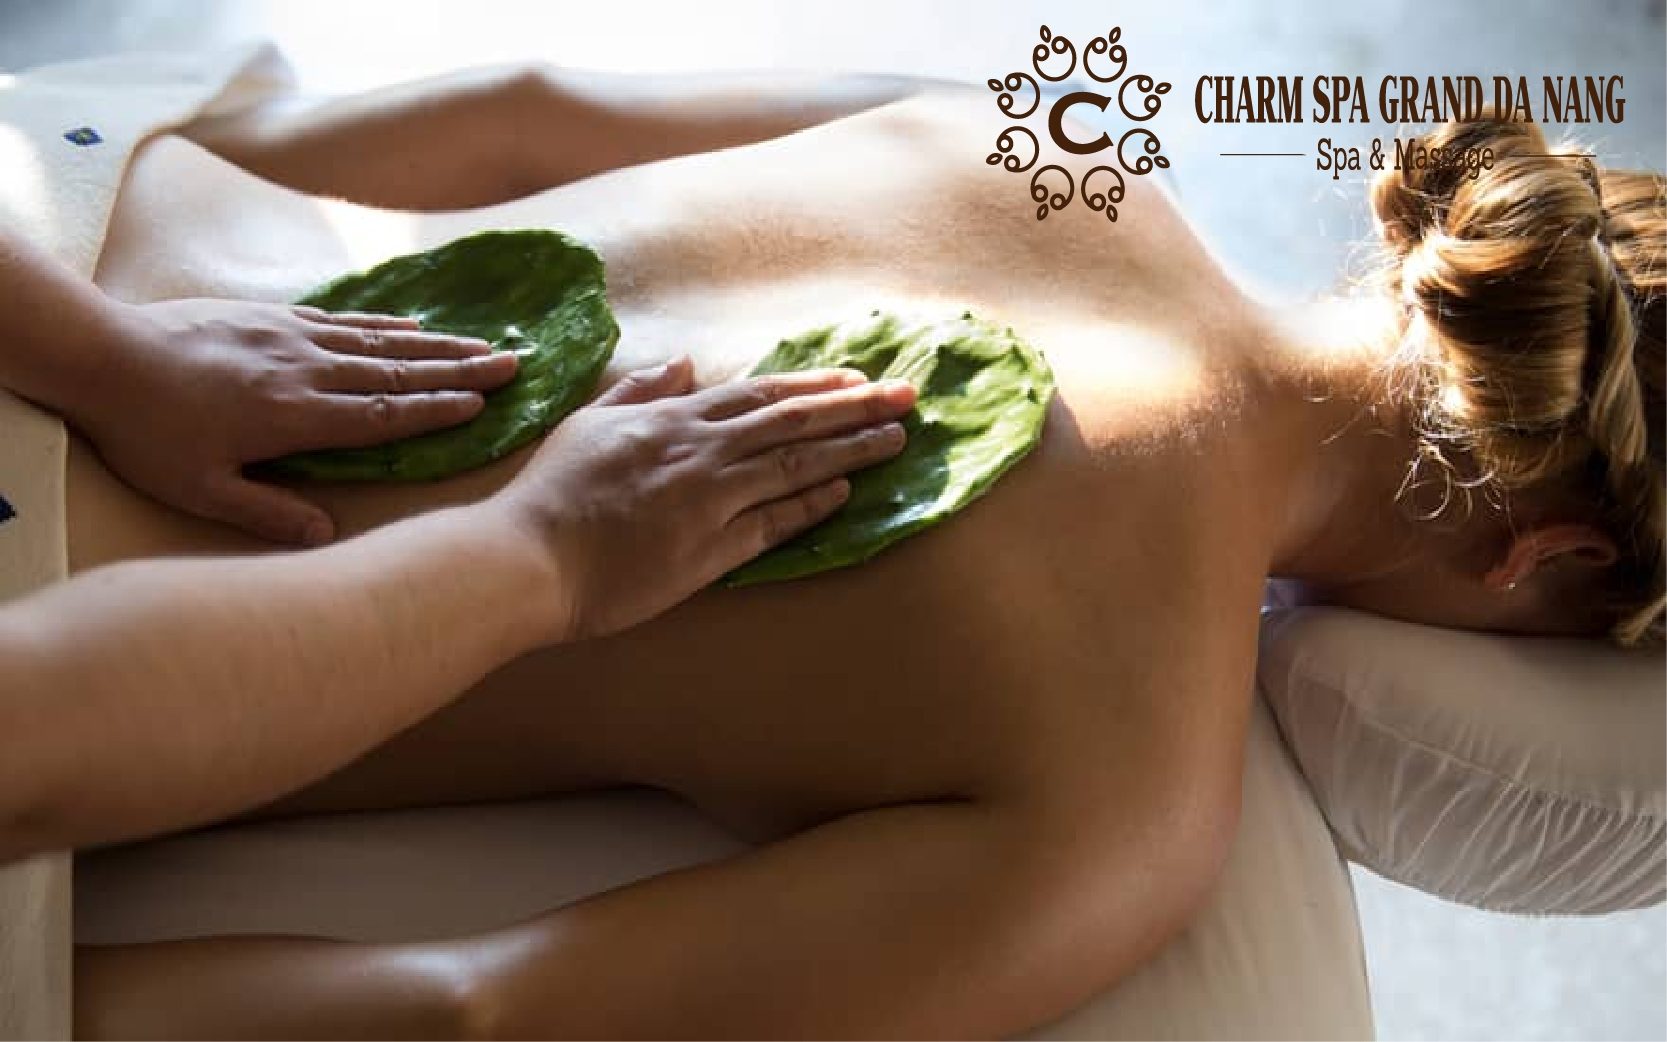 hakali-massage-charm-grand-da-nang